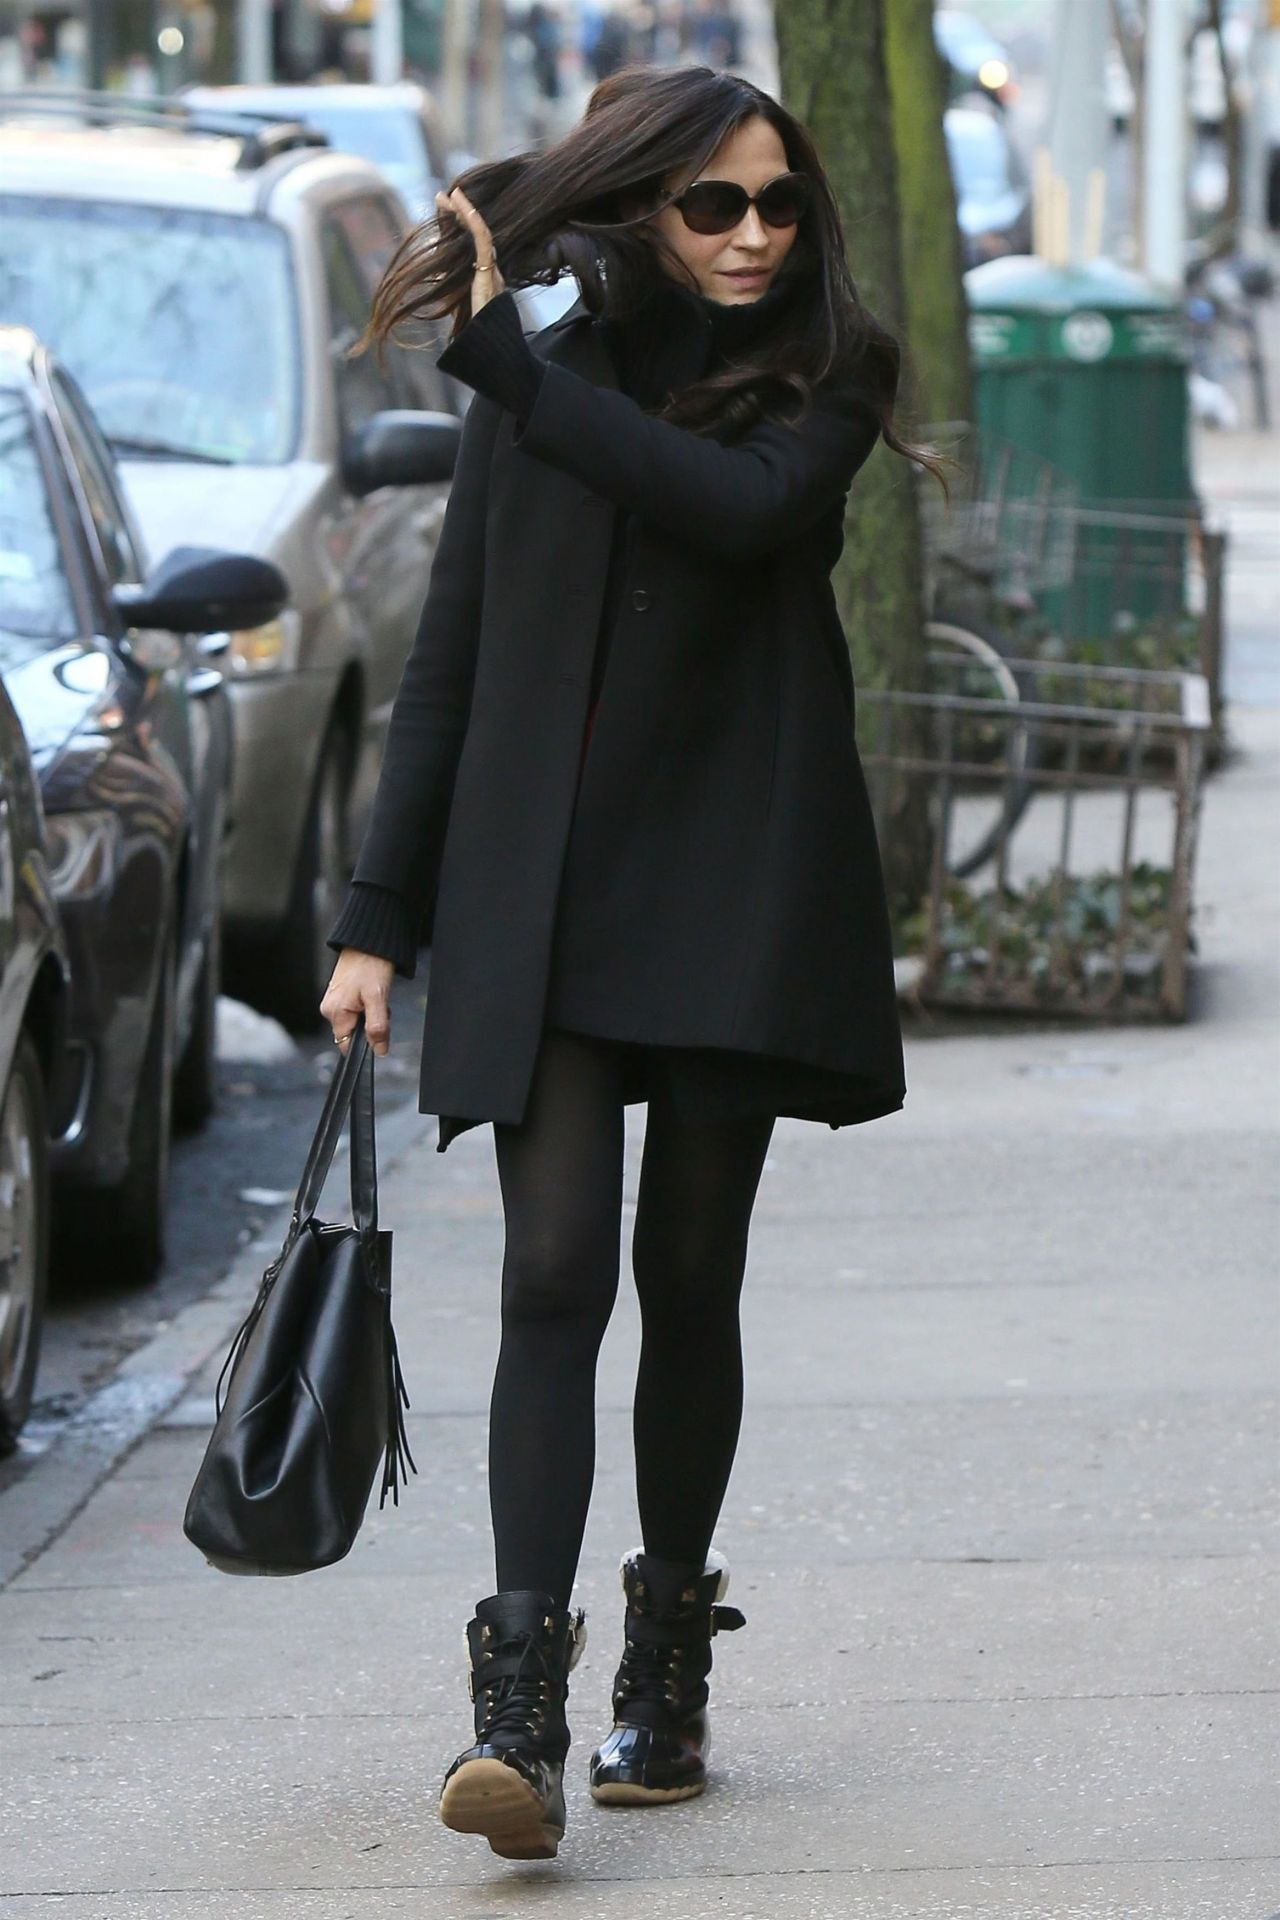 Famke Janssen Street Fashion Soho In Nyc 04 02 2018